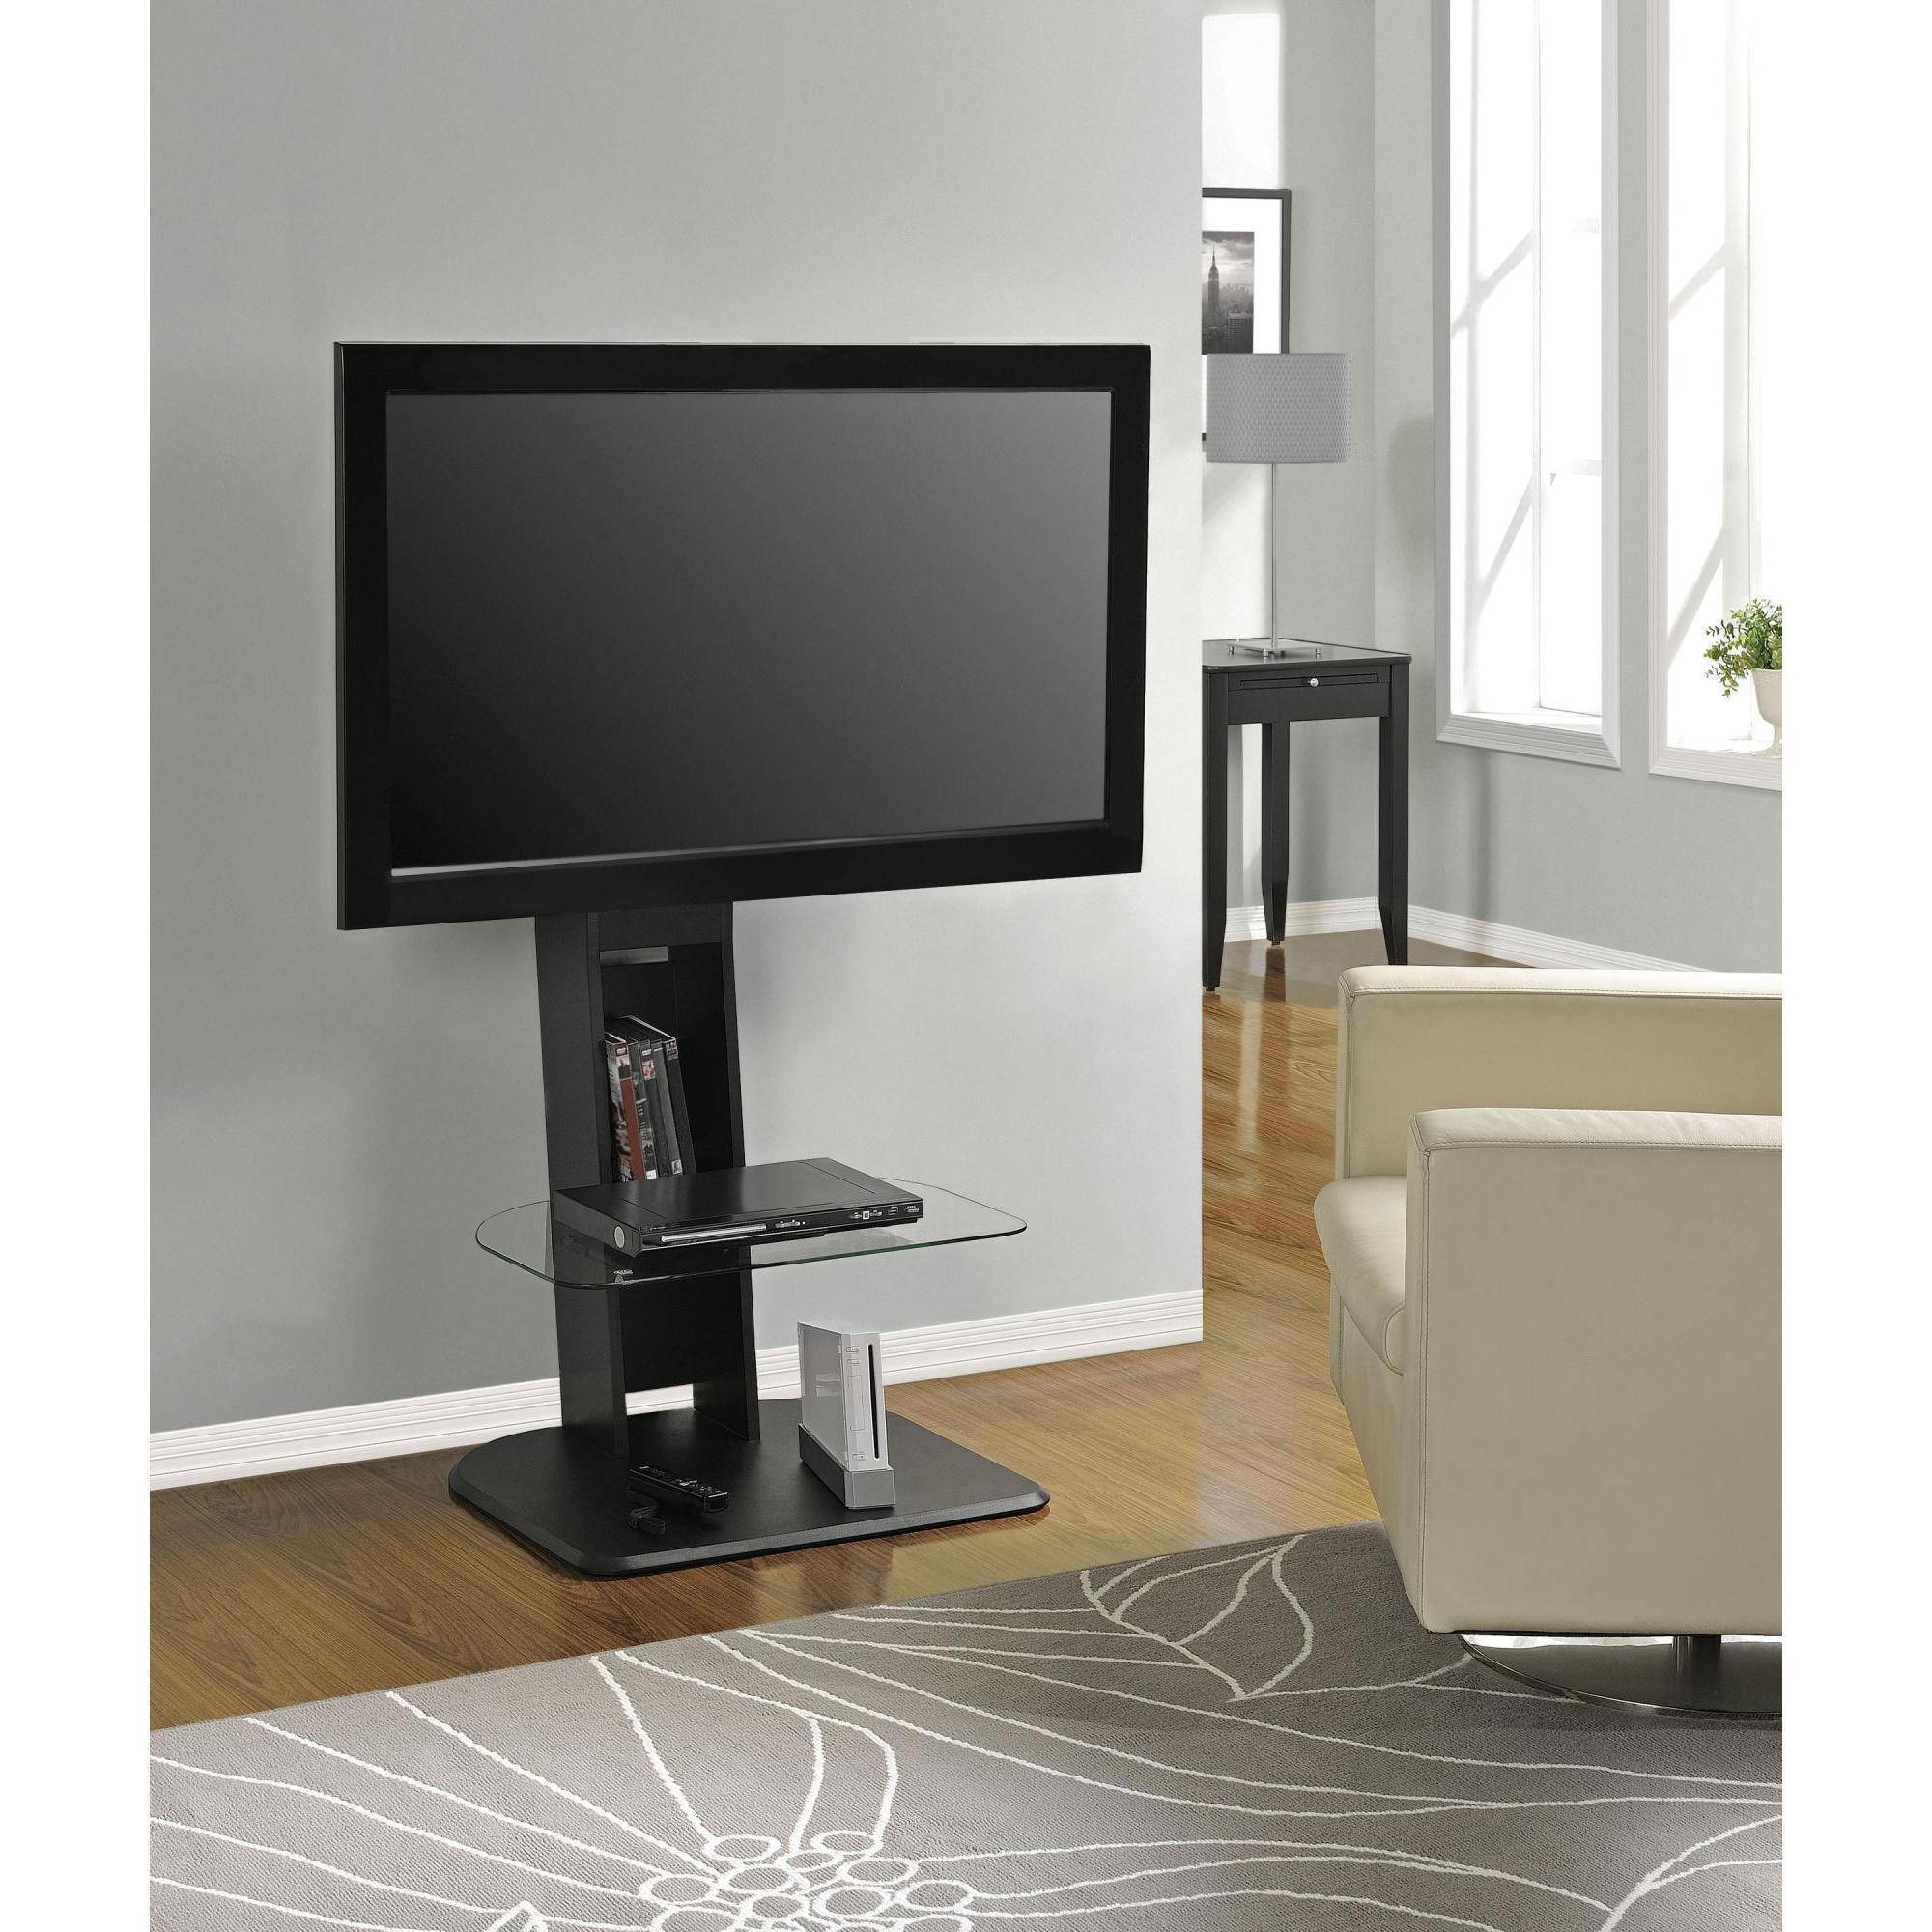 Atlantic Furniture Tabletop Tv Stand, Black – Walmart For 50 Inch Corner Tv Cabinets (View 3 of 15)